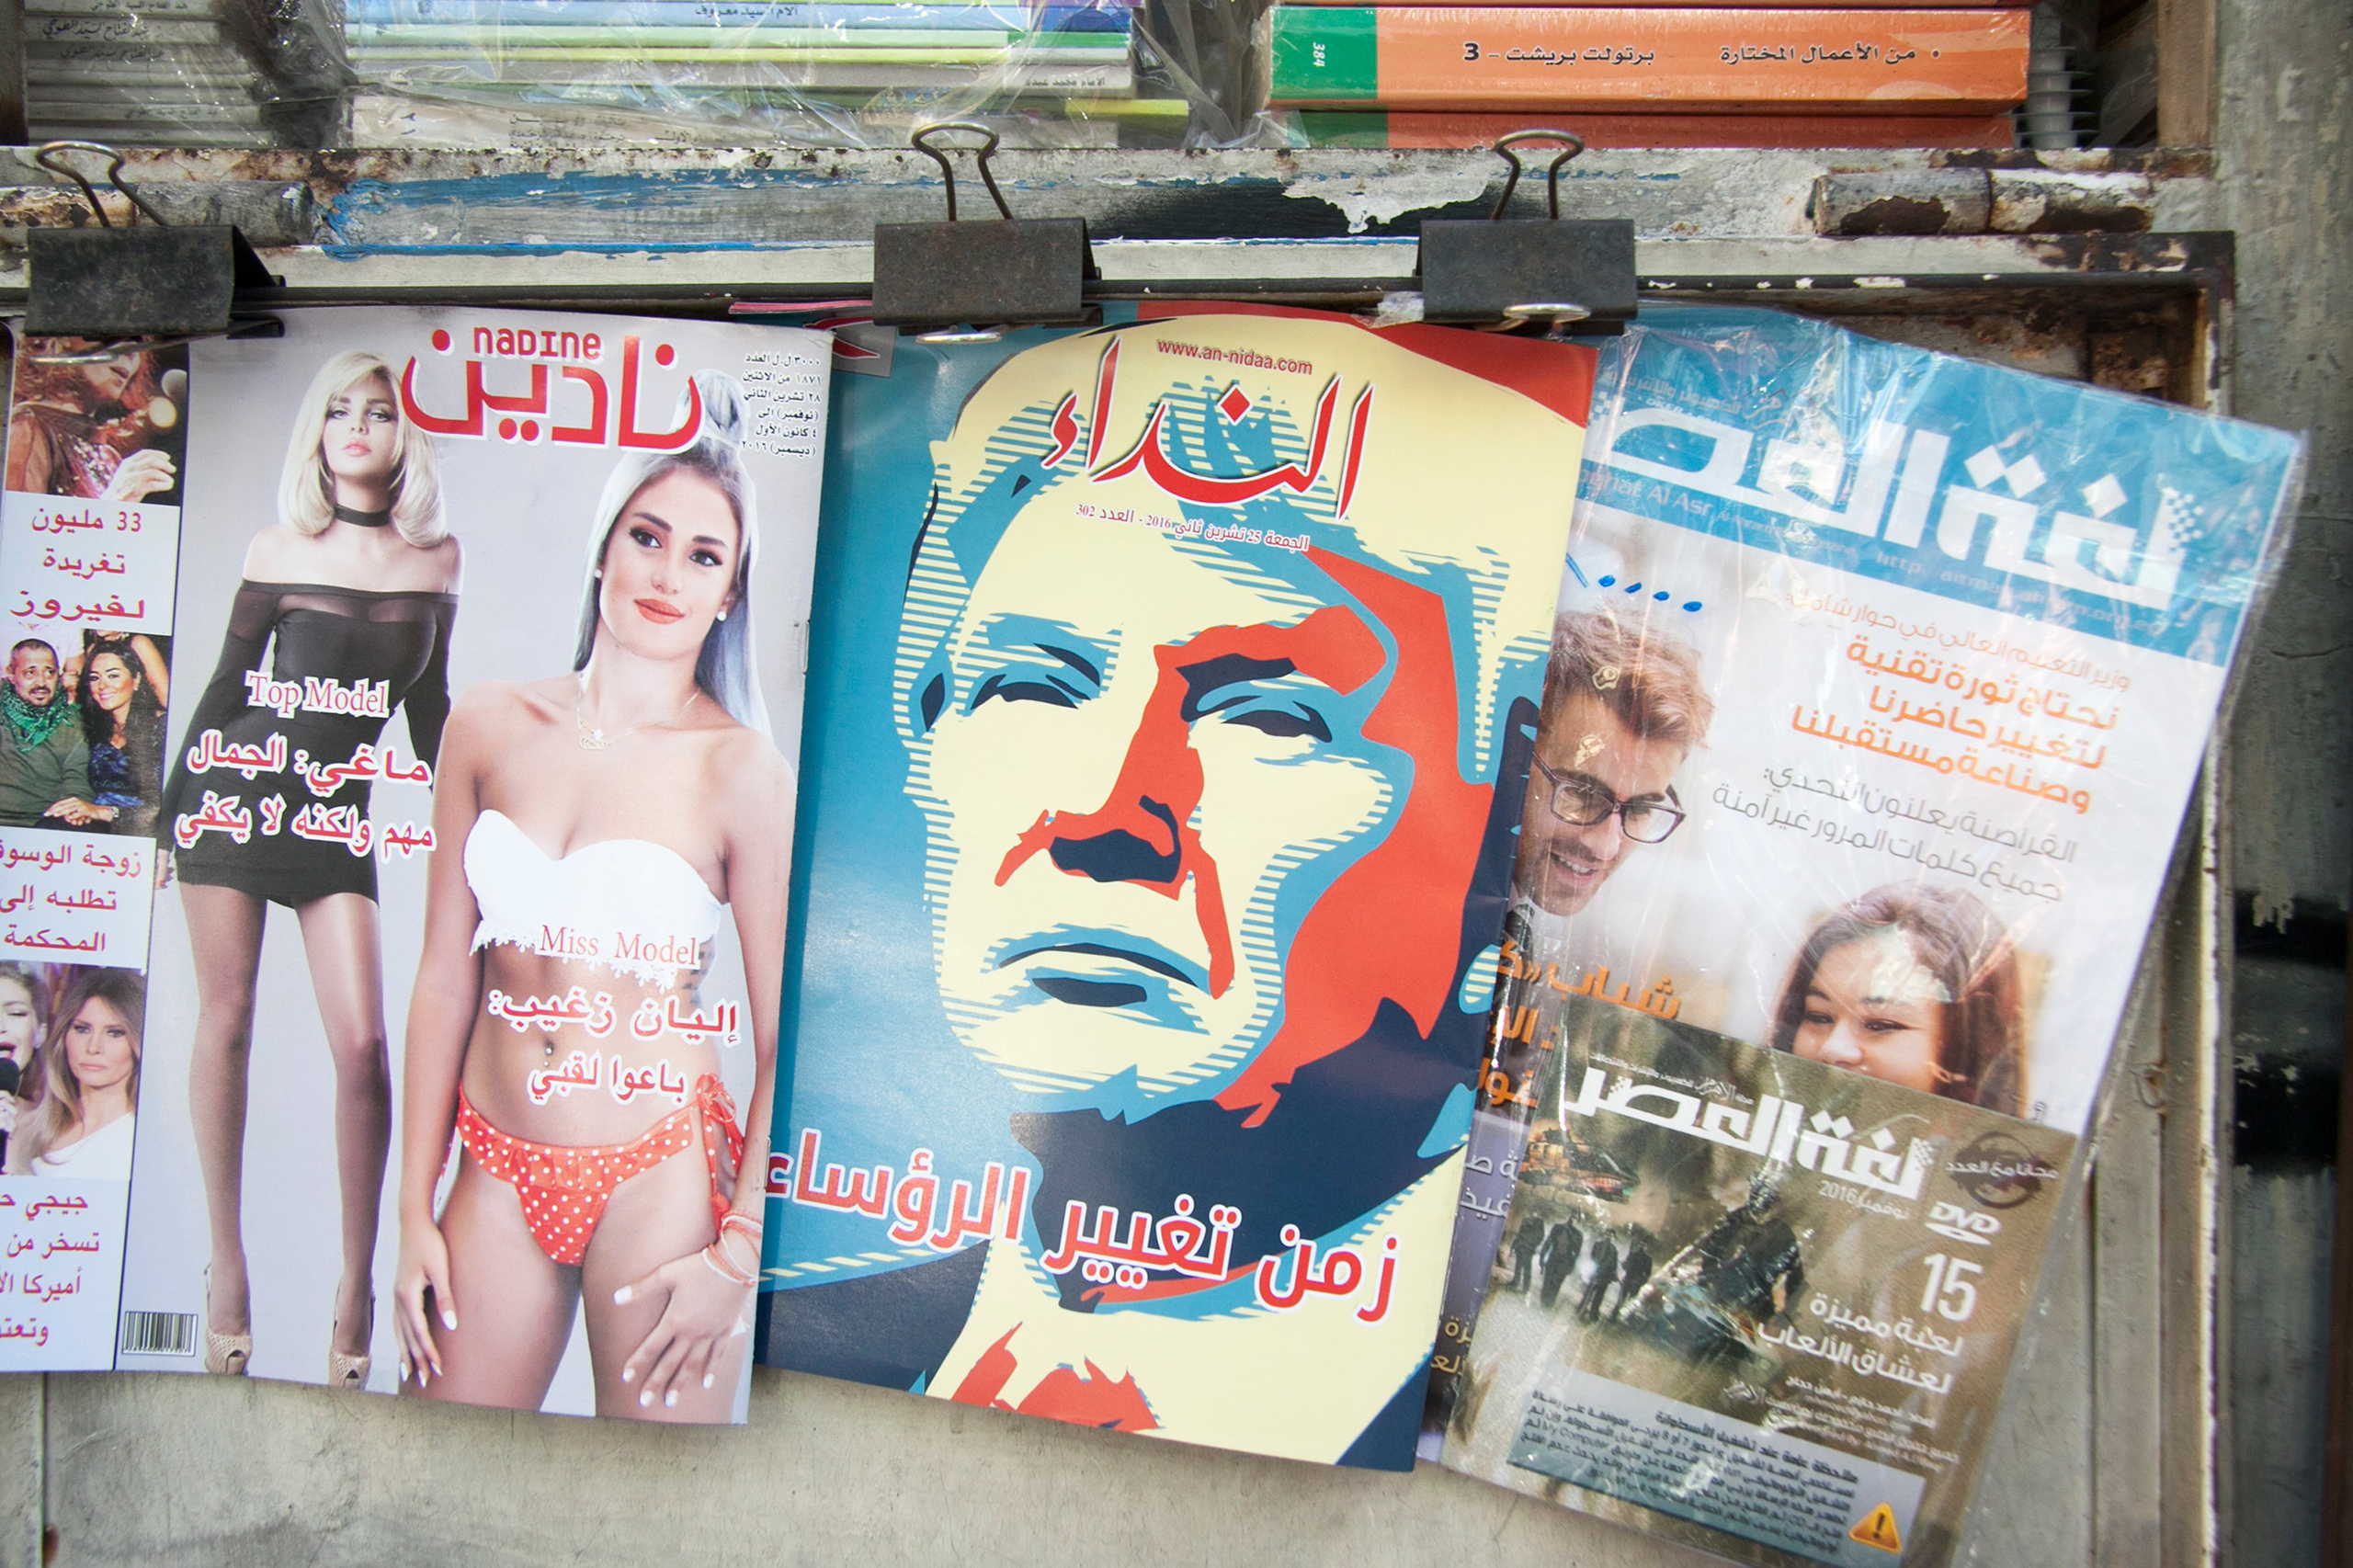 President-elect Donald Trump is featured on the front cover of an Arabic-language magazine cover at a newsstand in Beirut on Nov. 25, 2016.